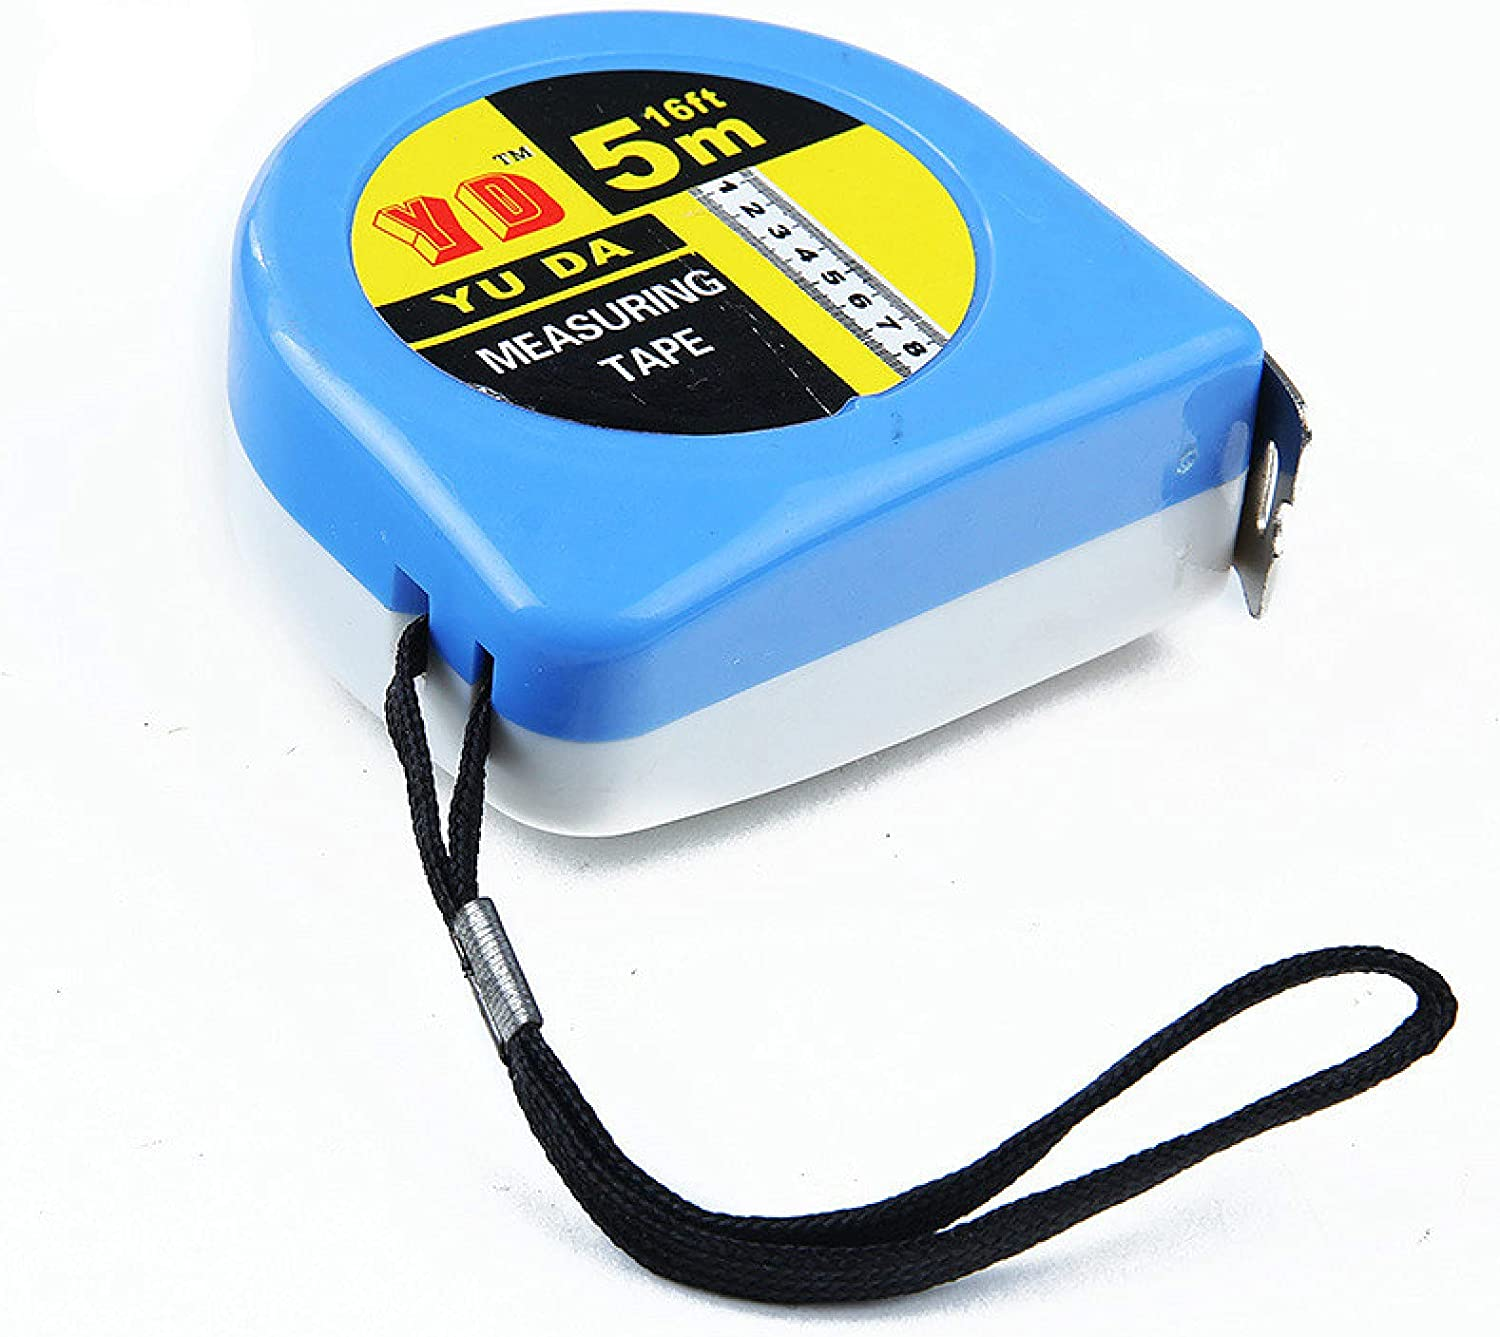 XIYUNM Tape Measure 3mm Steel Abs Miami Mall New Quality inspection Blue Material